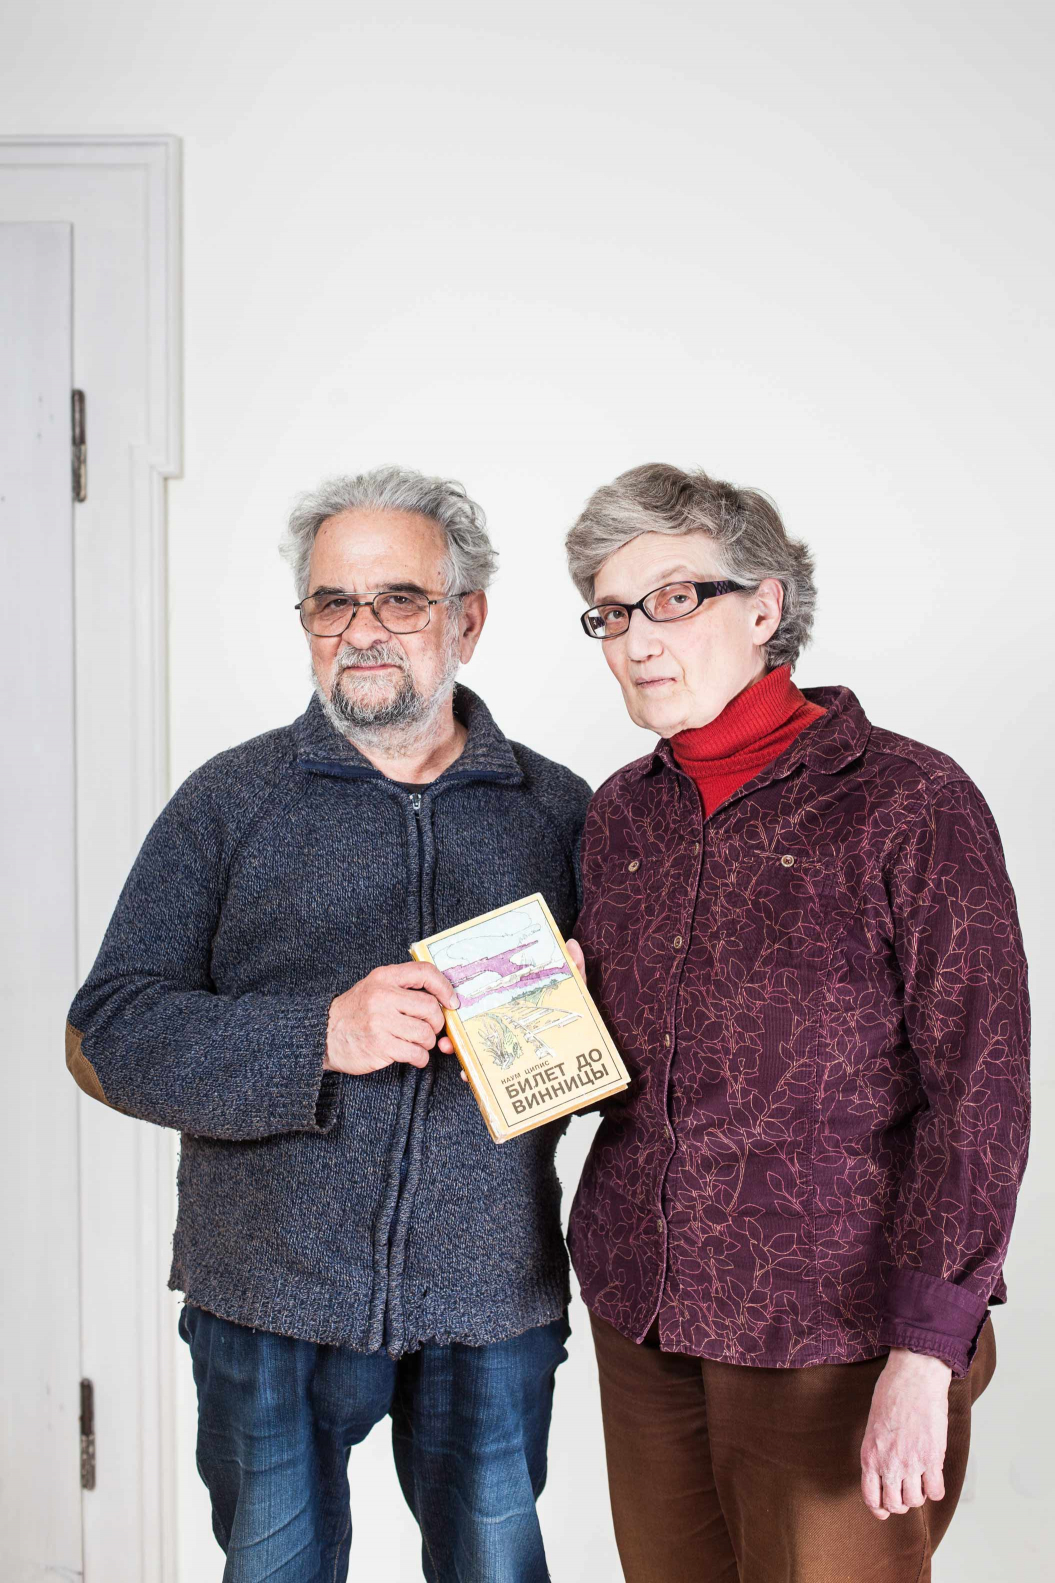 Elderly man and elderly lady holding a book together